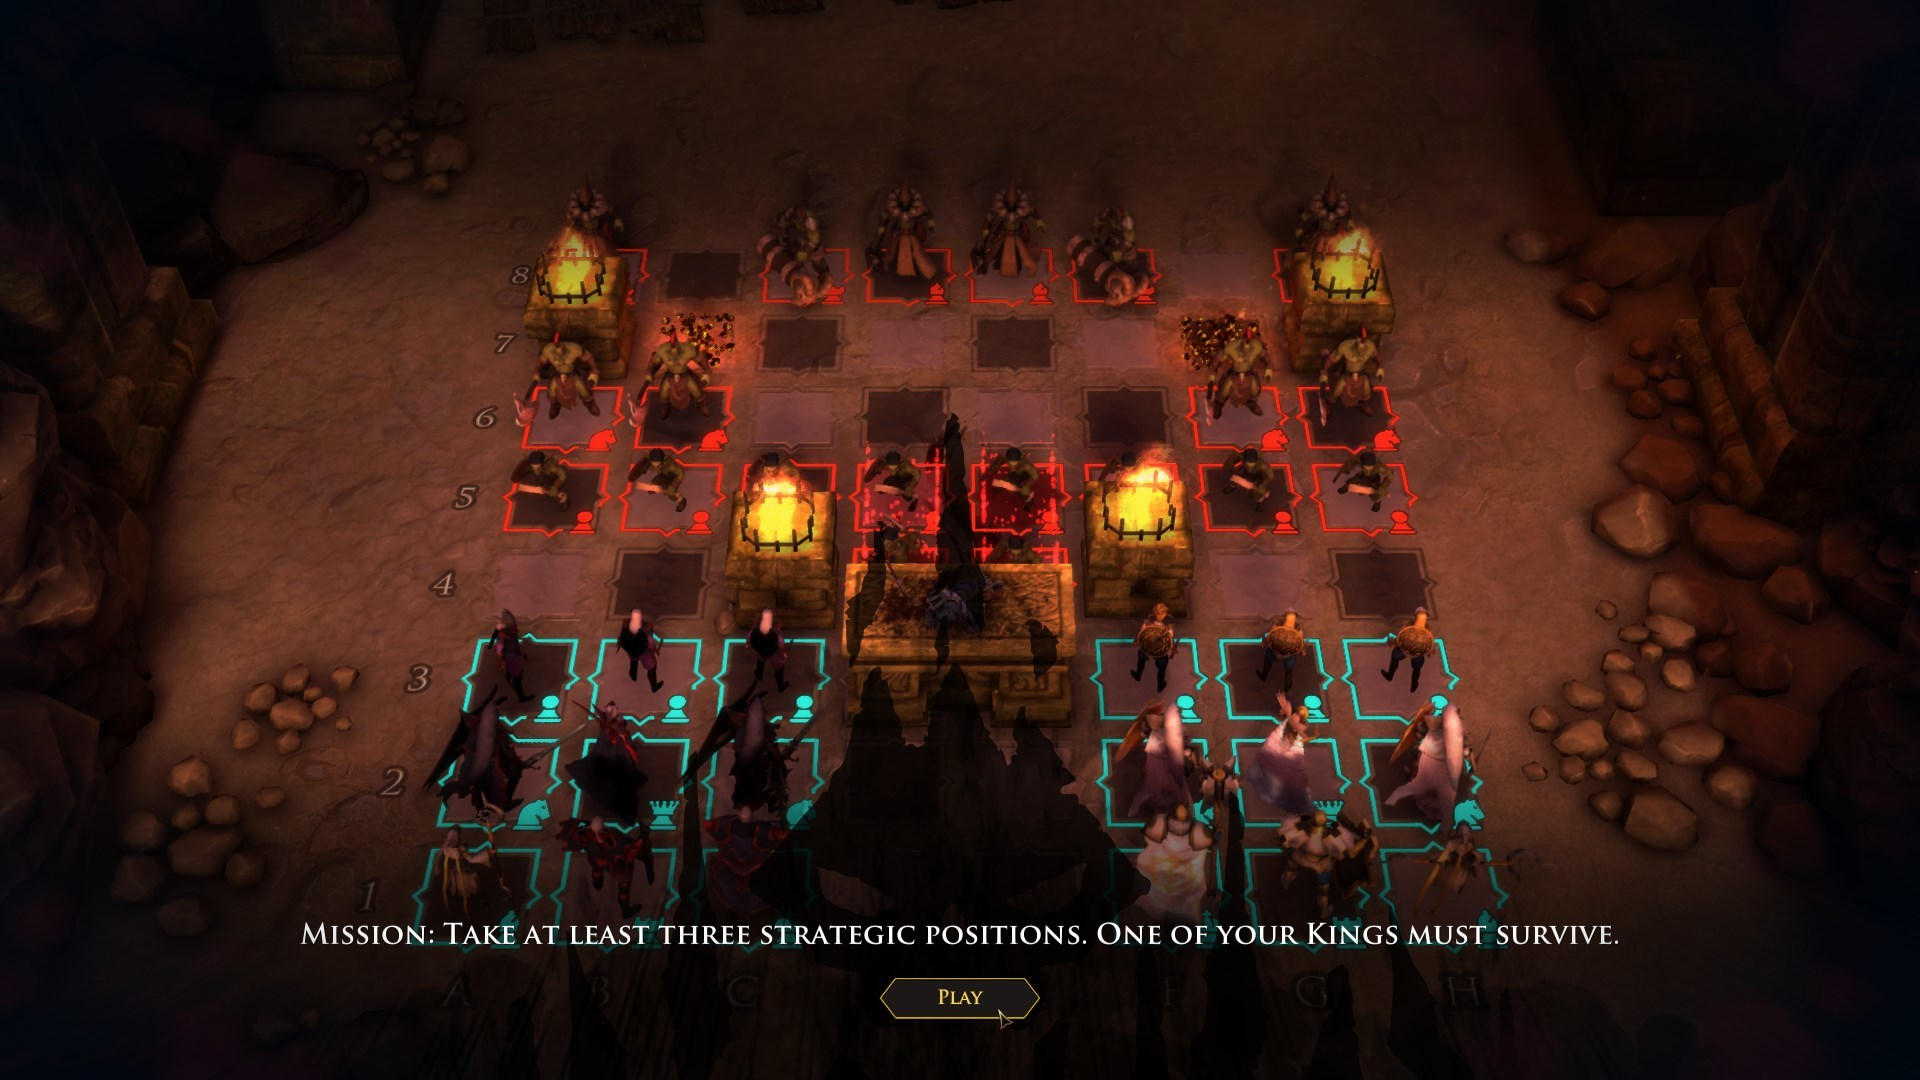 Chessaria The Tactical Adventure Back Gt Gallery For Chess Checkmate Diagram Is A Game Playable By Experienced Players As Well Gamers New To Of